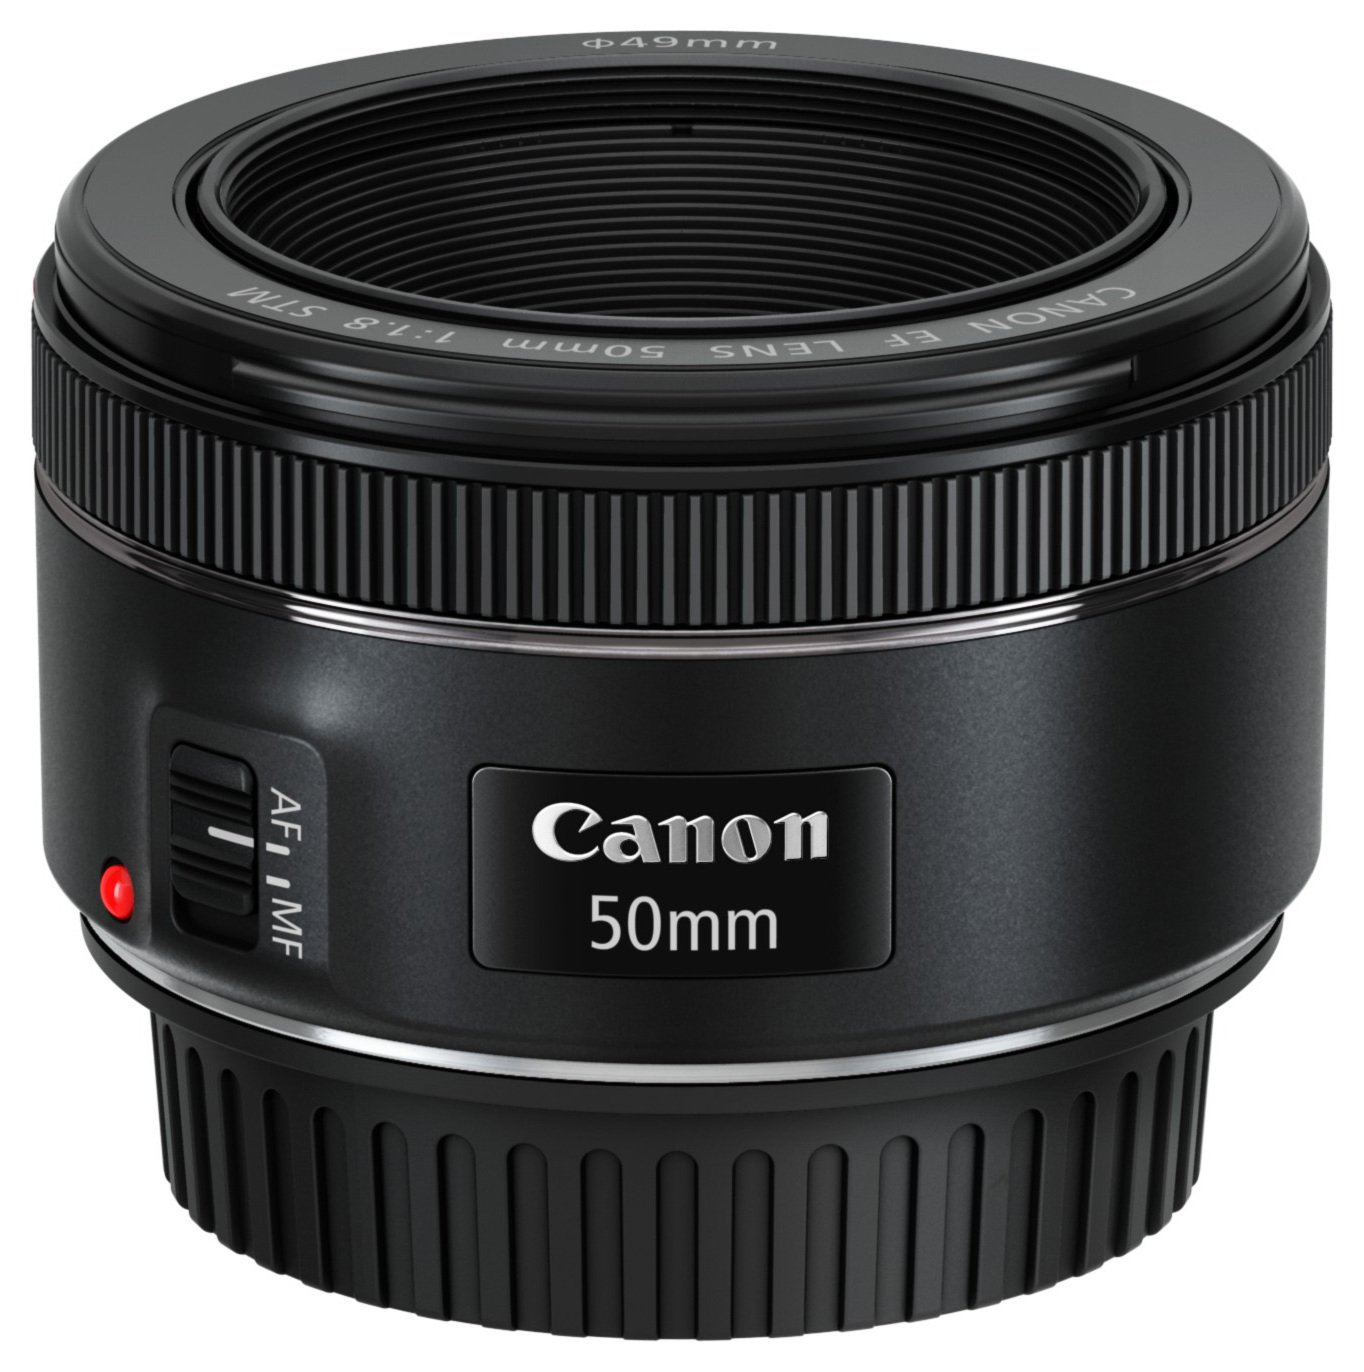 Canon EF 50mm f/1.8 STM Lens from canon